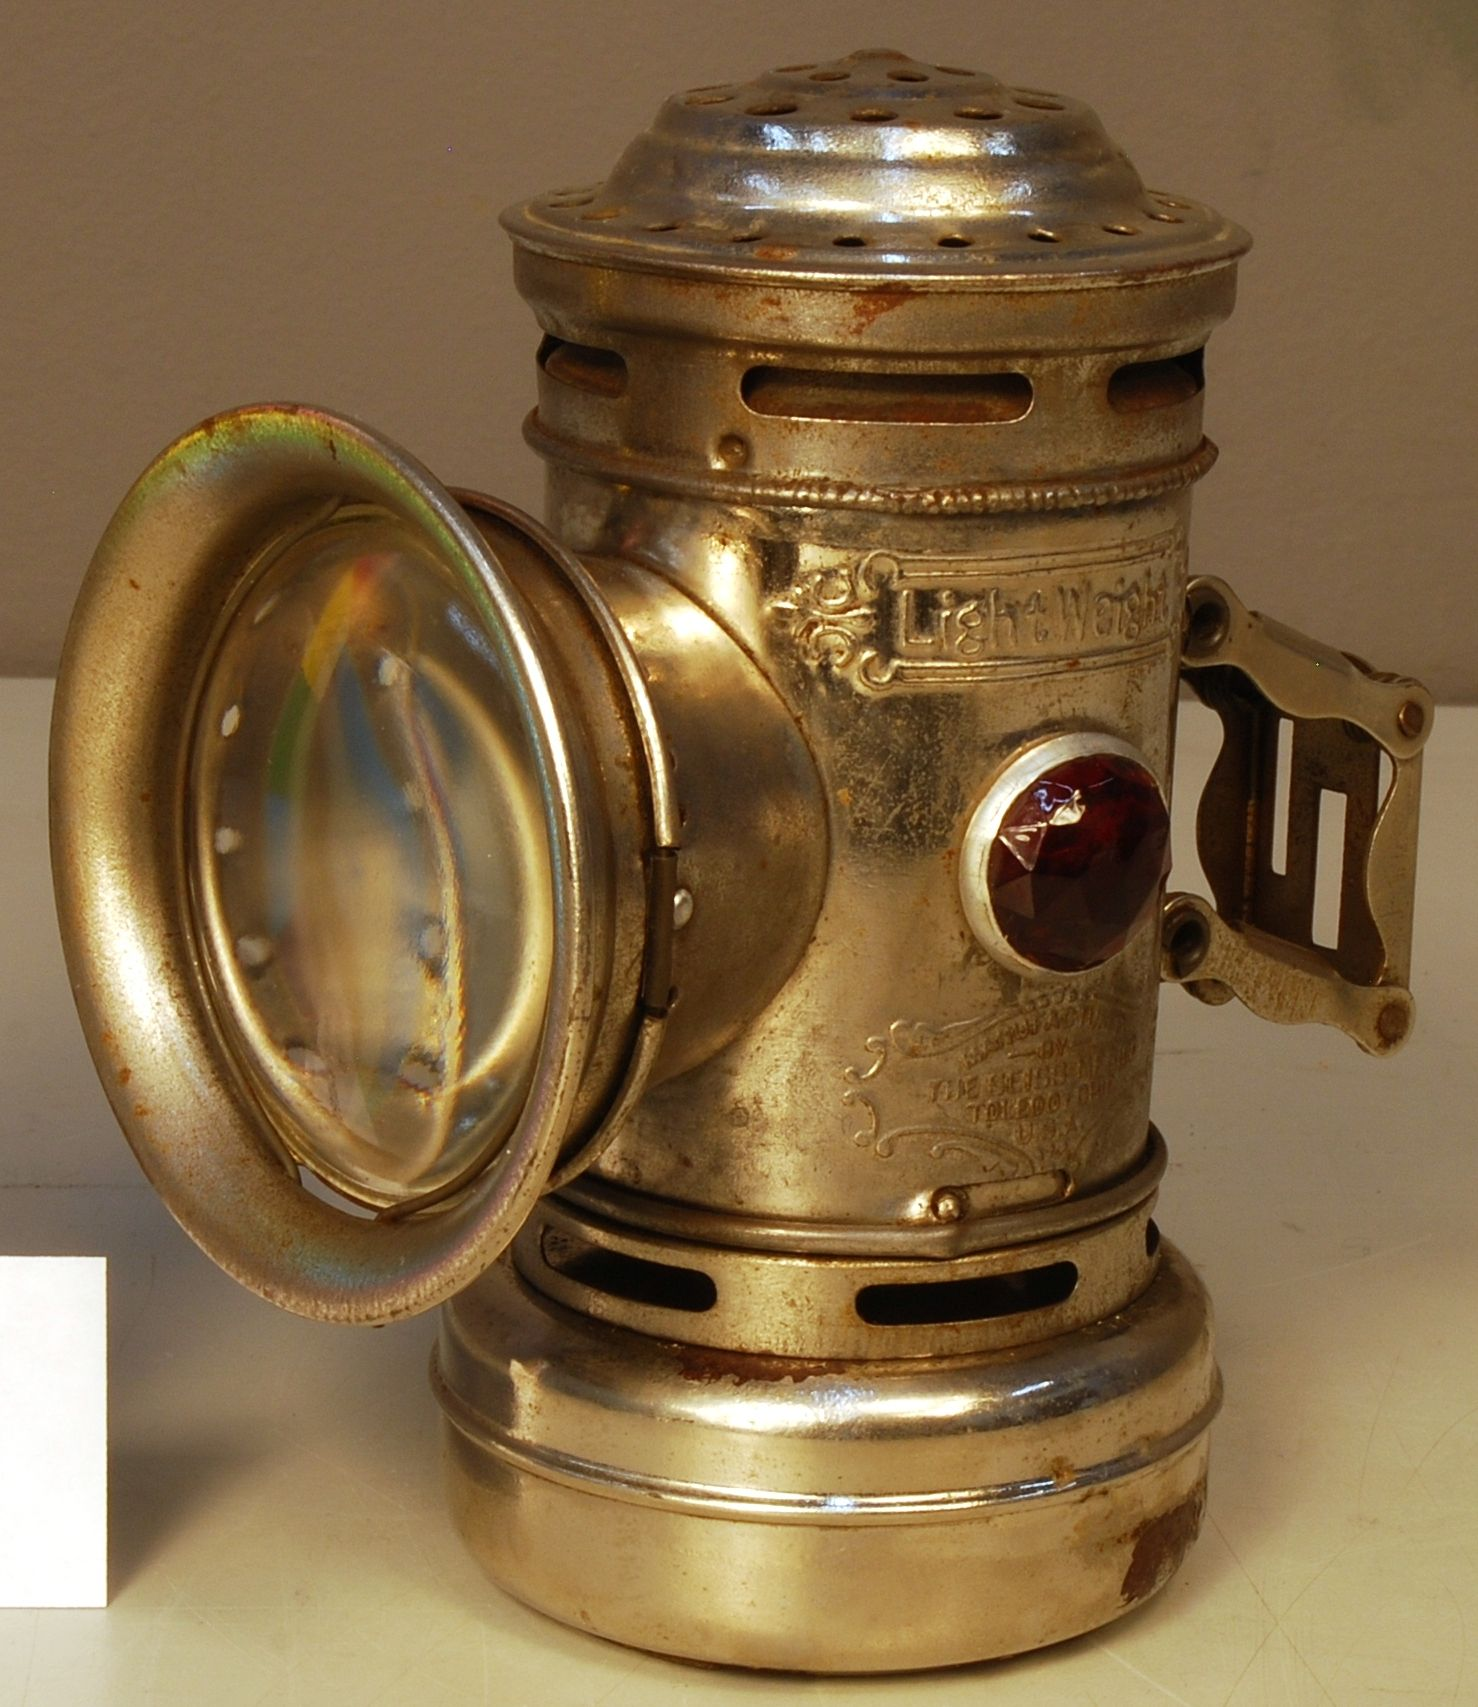 1903 Light Weight Seiss Mfg Co Bicycle Oil Lamp Antique Bicycles Vintage Bicycles Vintage Bikes